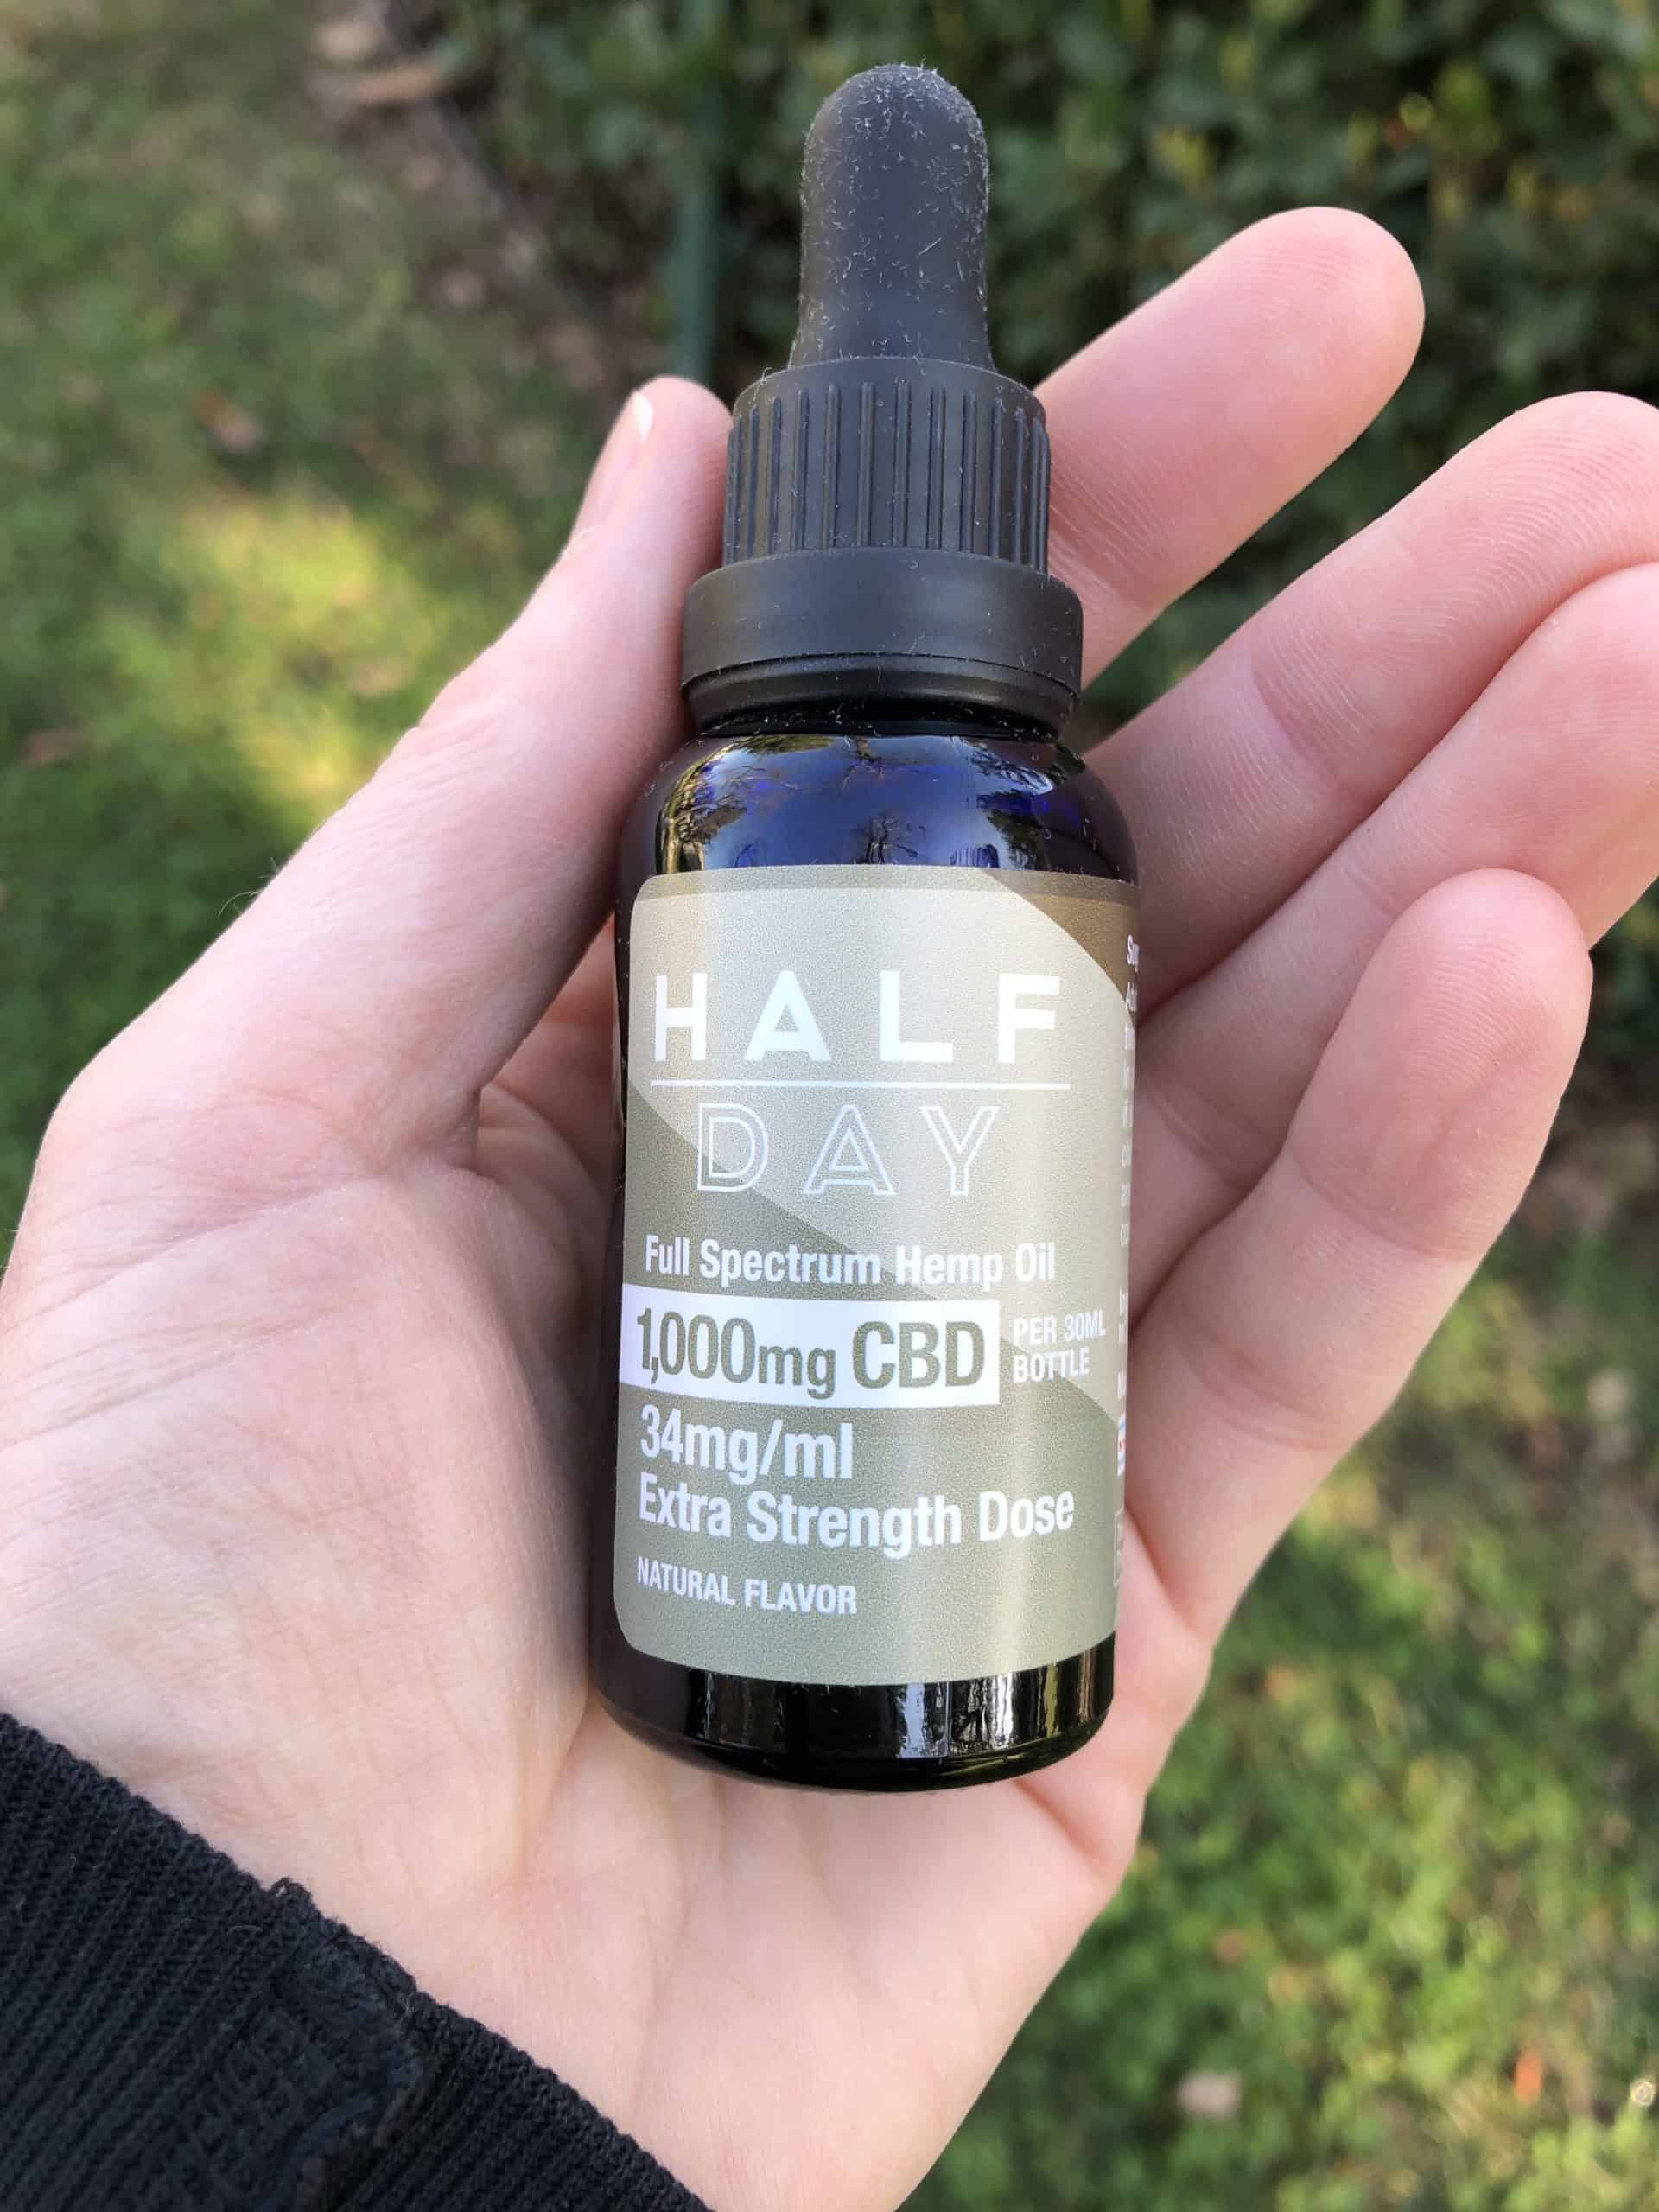 Half Day - Full Spectrum CBD Oil Tincture 1000mg Natural Flavor